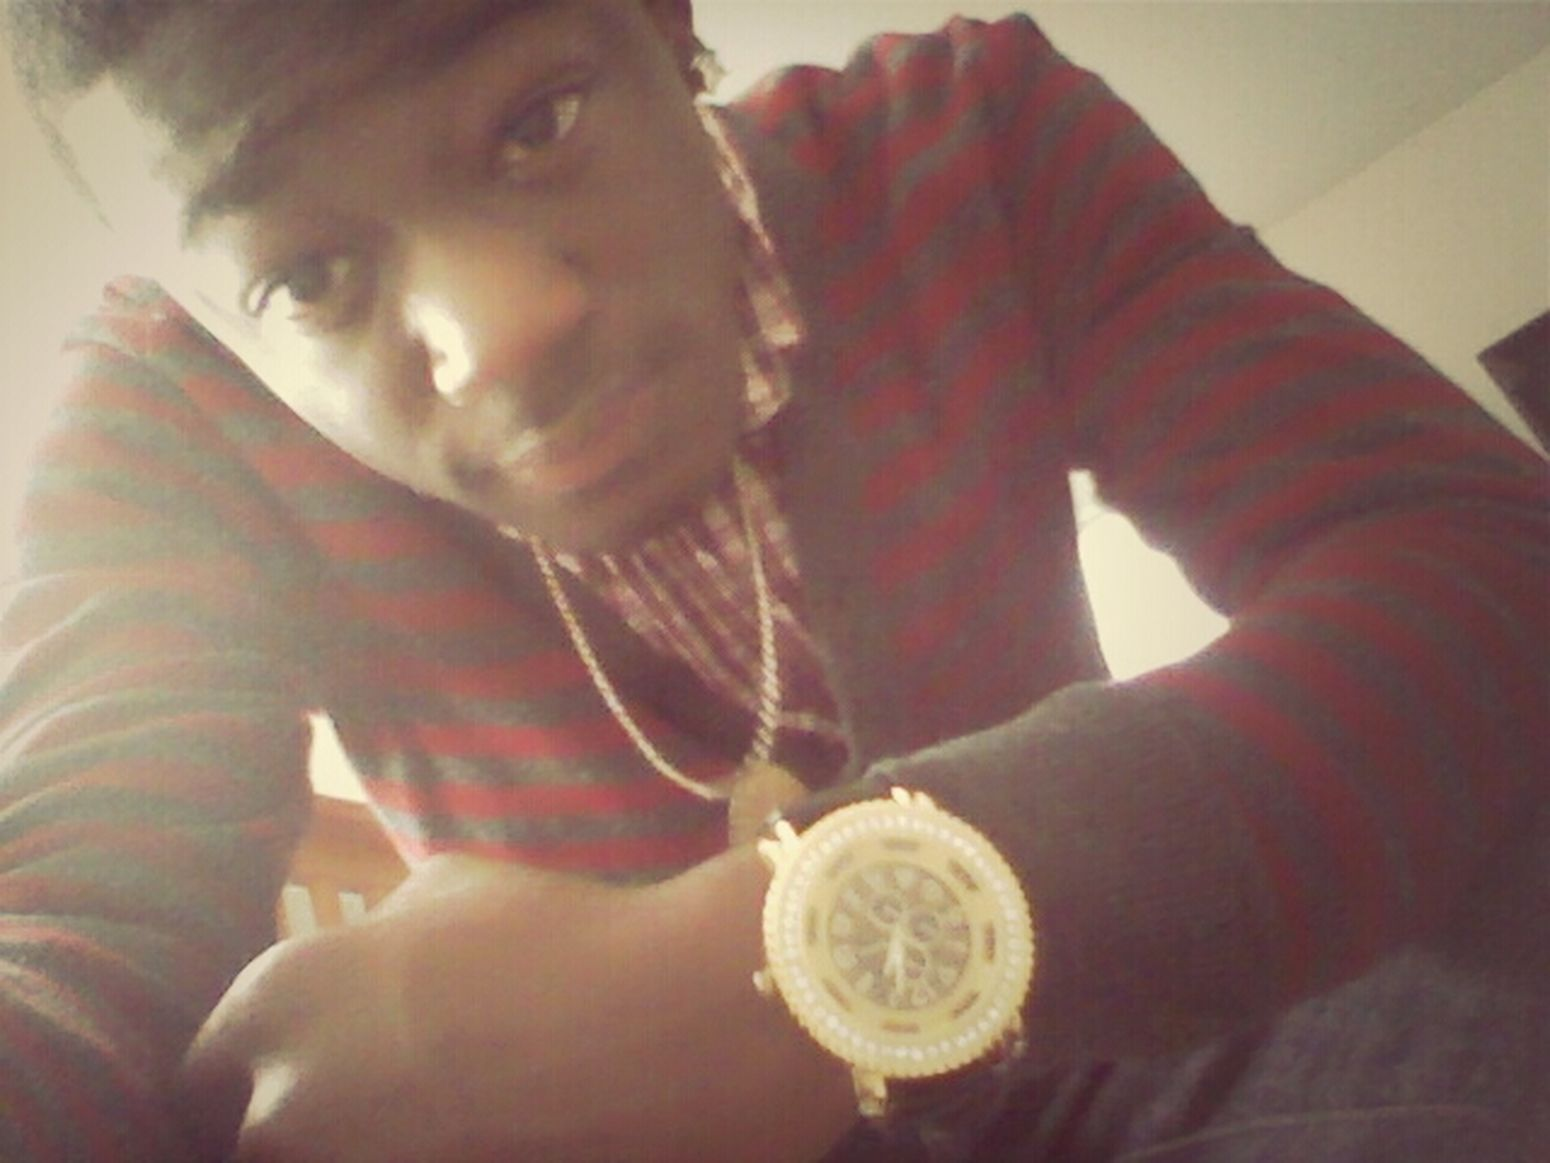 I'm one of very few fly guys, but my appearance isn't what makes me the smart intelligent young man I am today it was by gods grace that I am able to continue on accomplishing all my goals =) Proda_JayJay96 ©